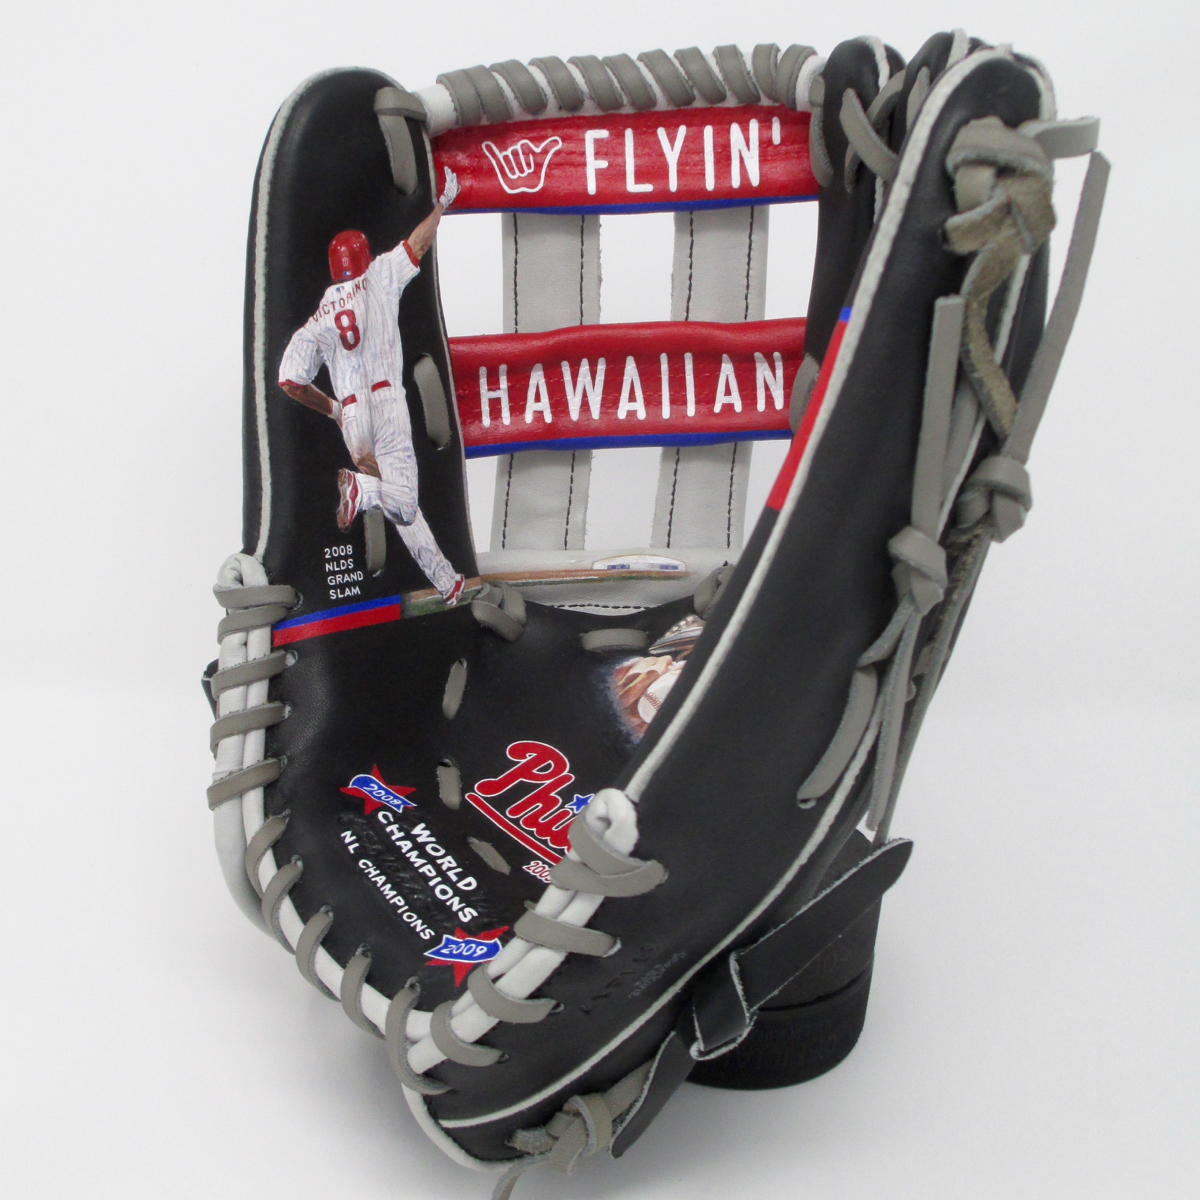 sean-kane-shane-victorino-flyin-hawaiian-phillies-glove-art.jpg